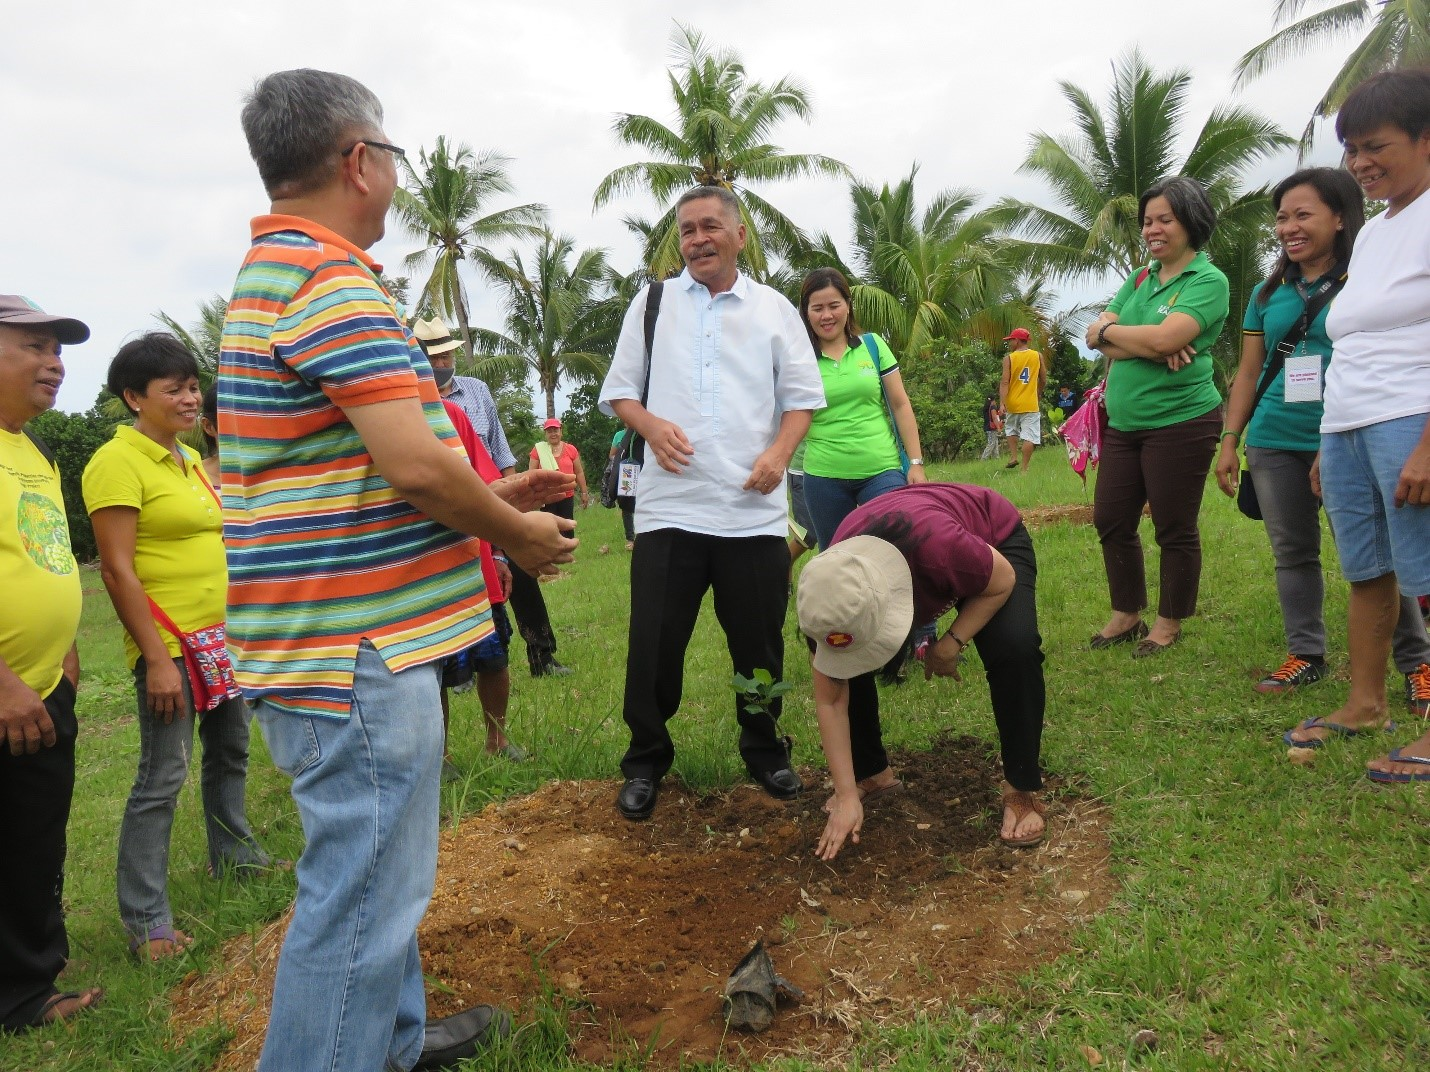 Ceremonial Tree Planting led by Dr. Bessie Burgos and Dr. Othello Capuno with Prof. Rolando Bello and the jackfruit growers.